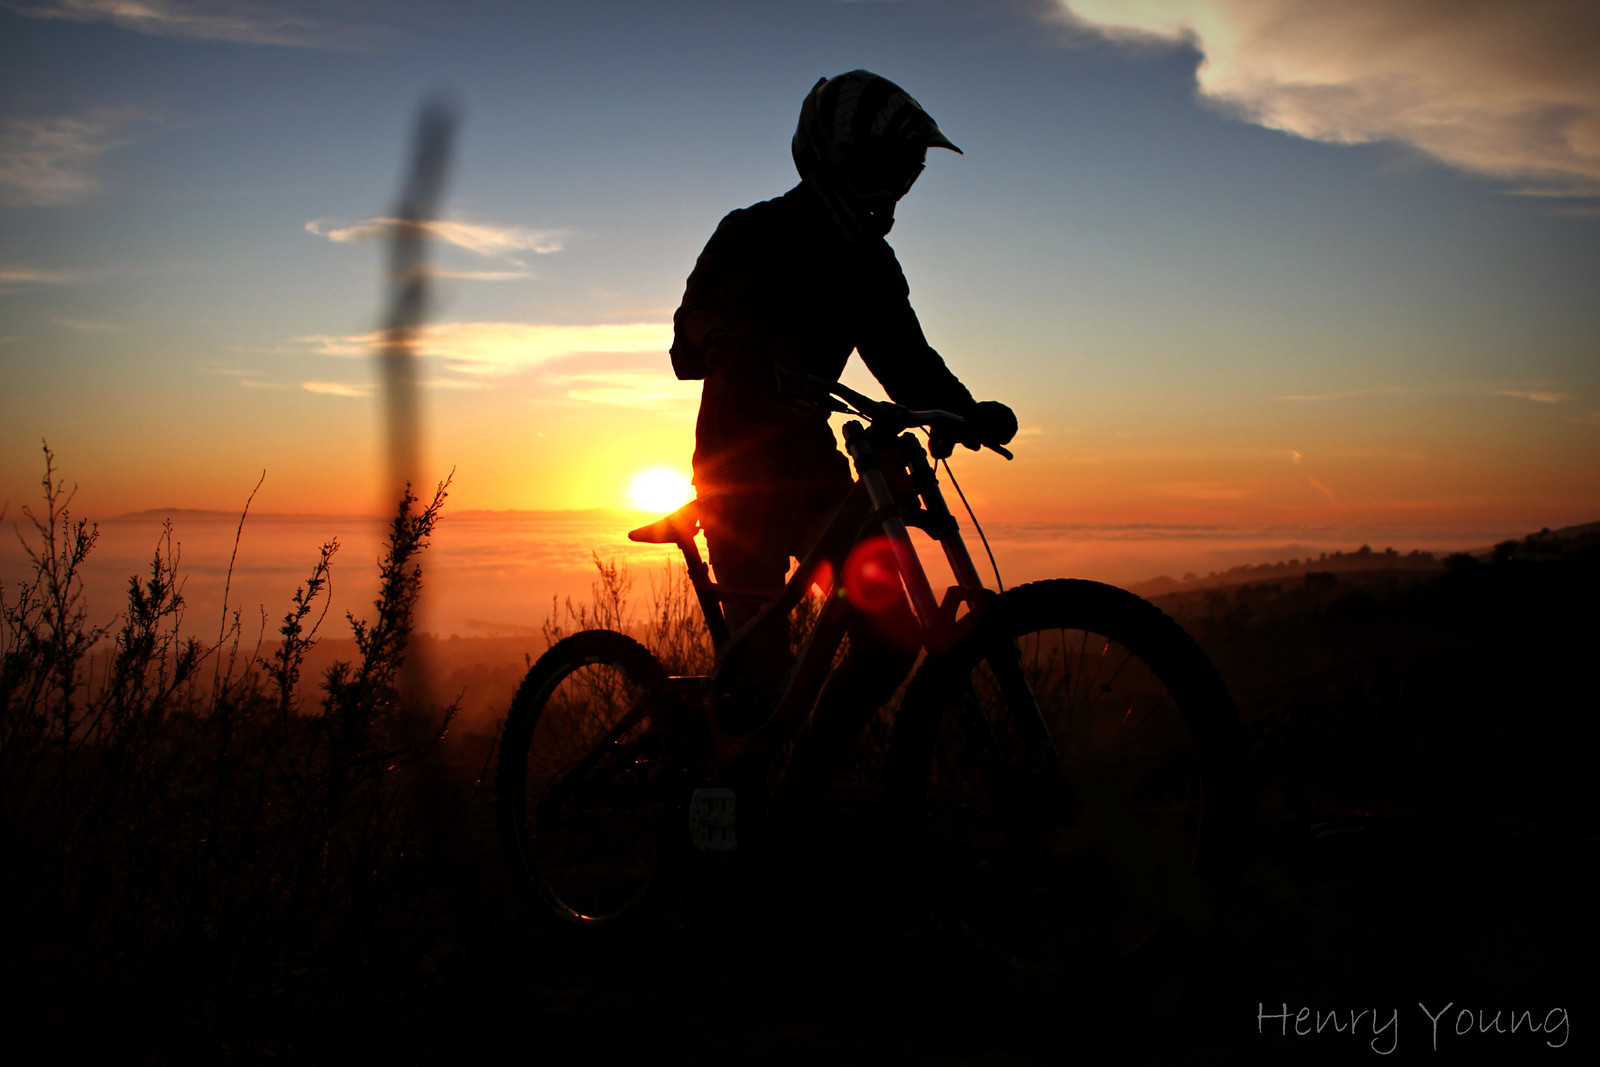 12-31-11 264 - Henry_Young - Mountain Biking Pictures - Vital MTB